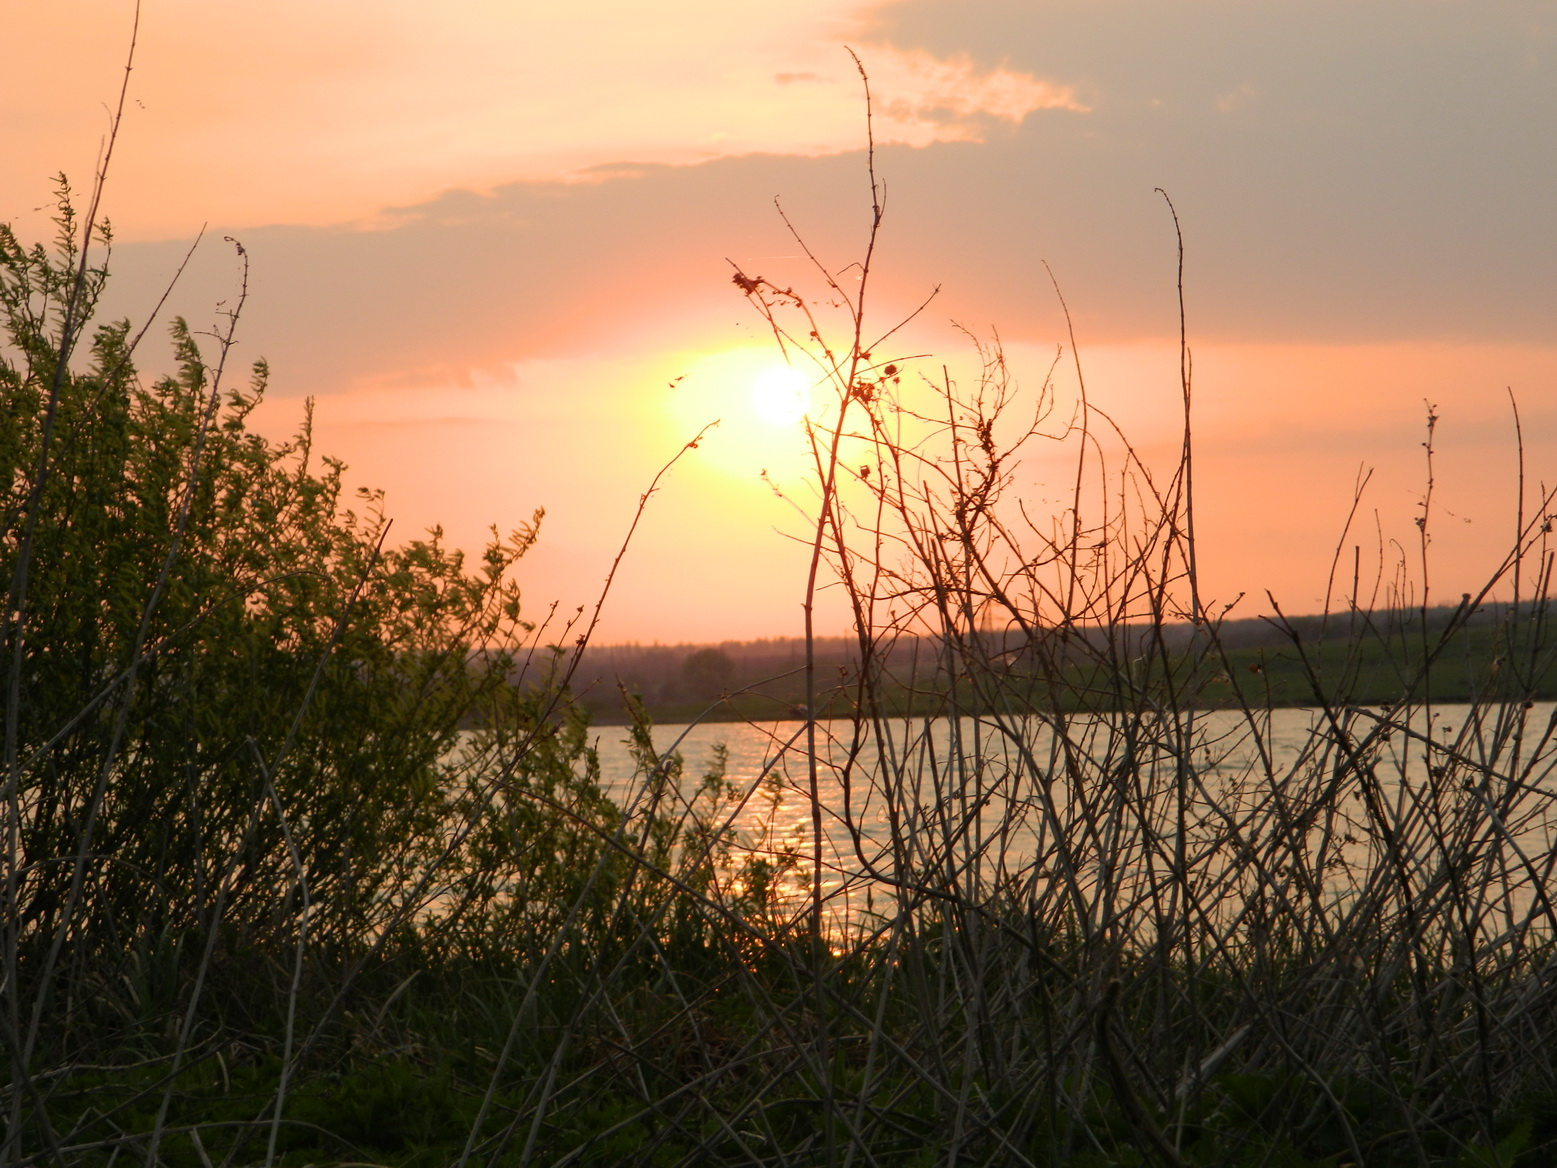 Sunset on the Karlovsky reservoir. Anna Dudko